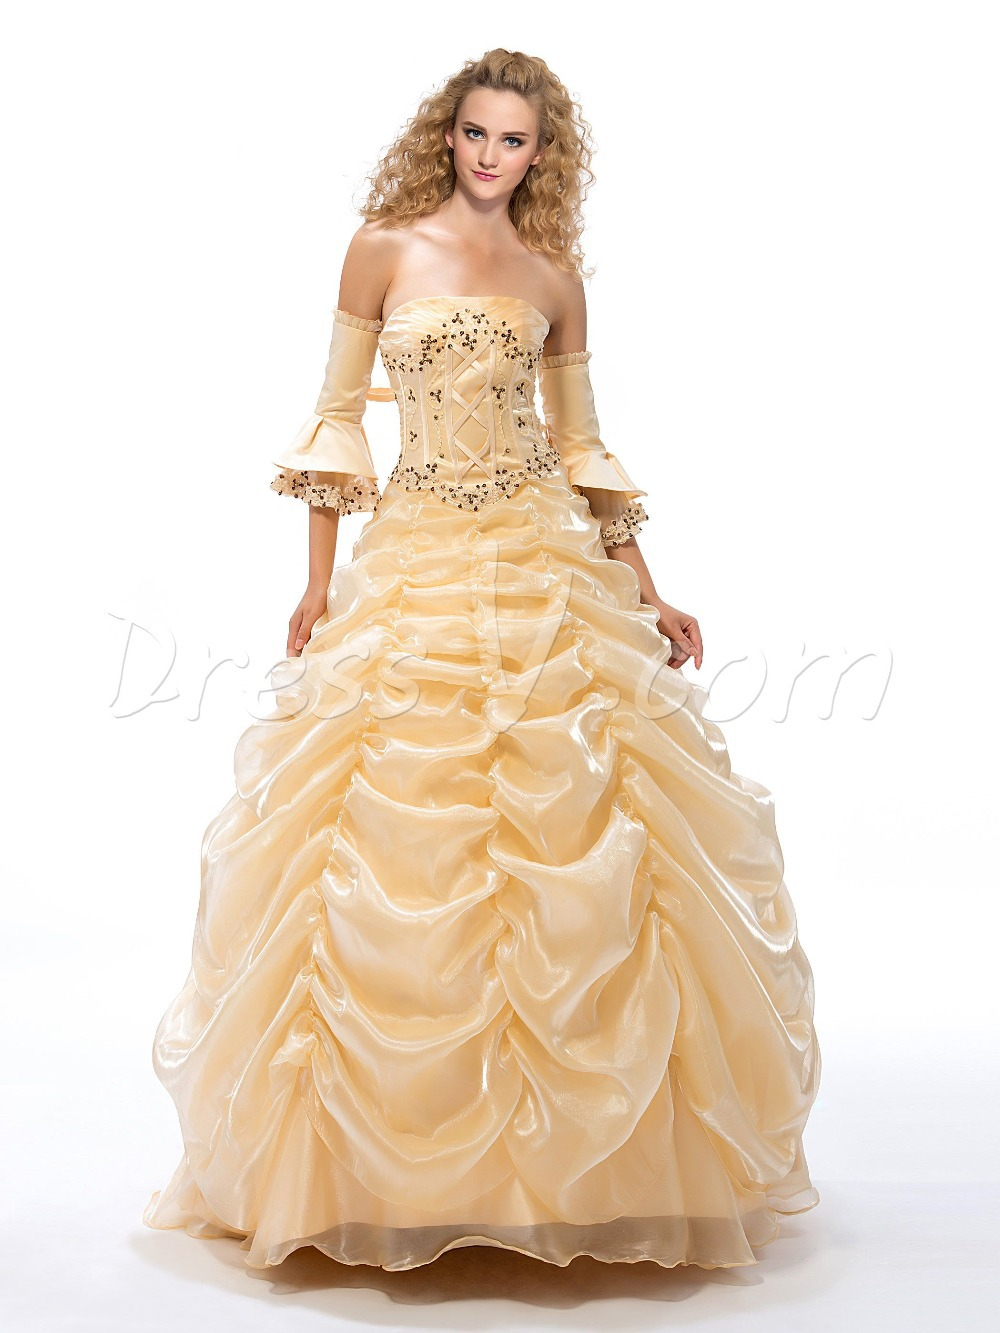 f46426bf3c4 Get Quotations · Vintage Romantic Champagne Quinceanera Dresses Strapless  Appliques Ruffles Puffy Lovely Princess Quinceanera Party Gowns